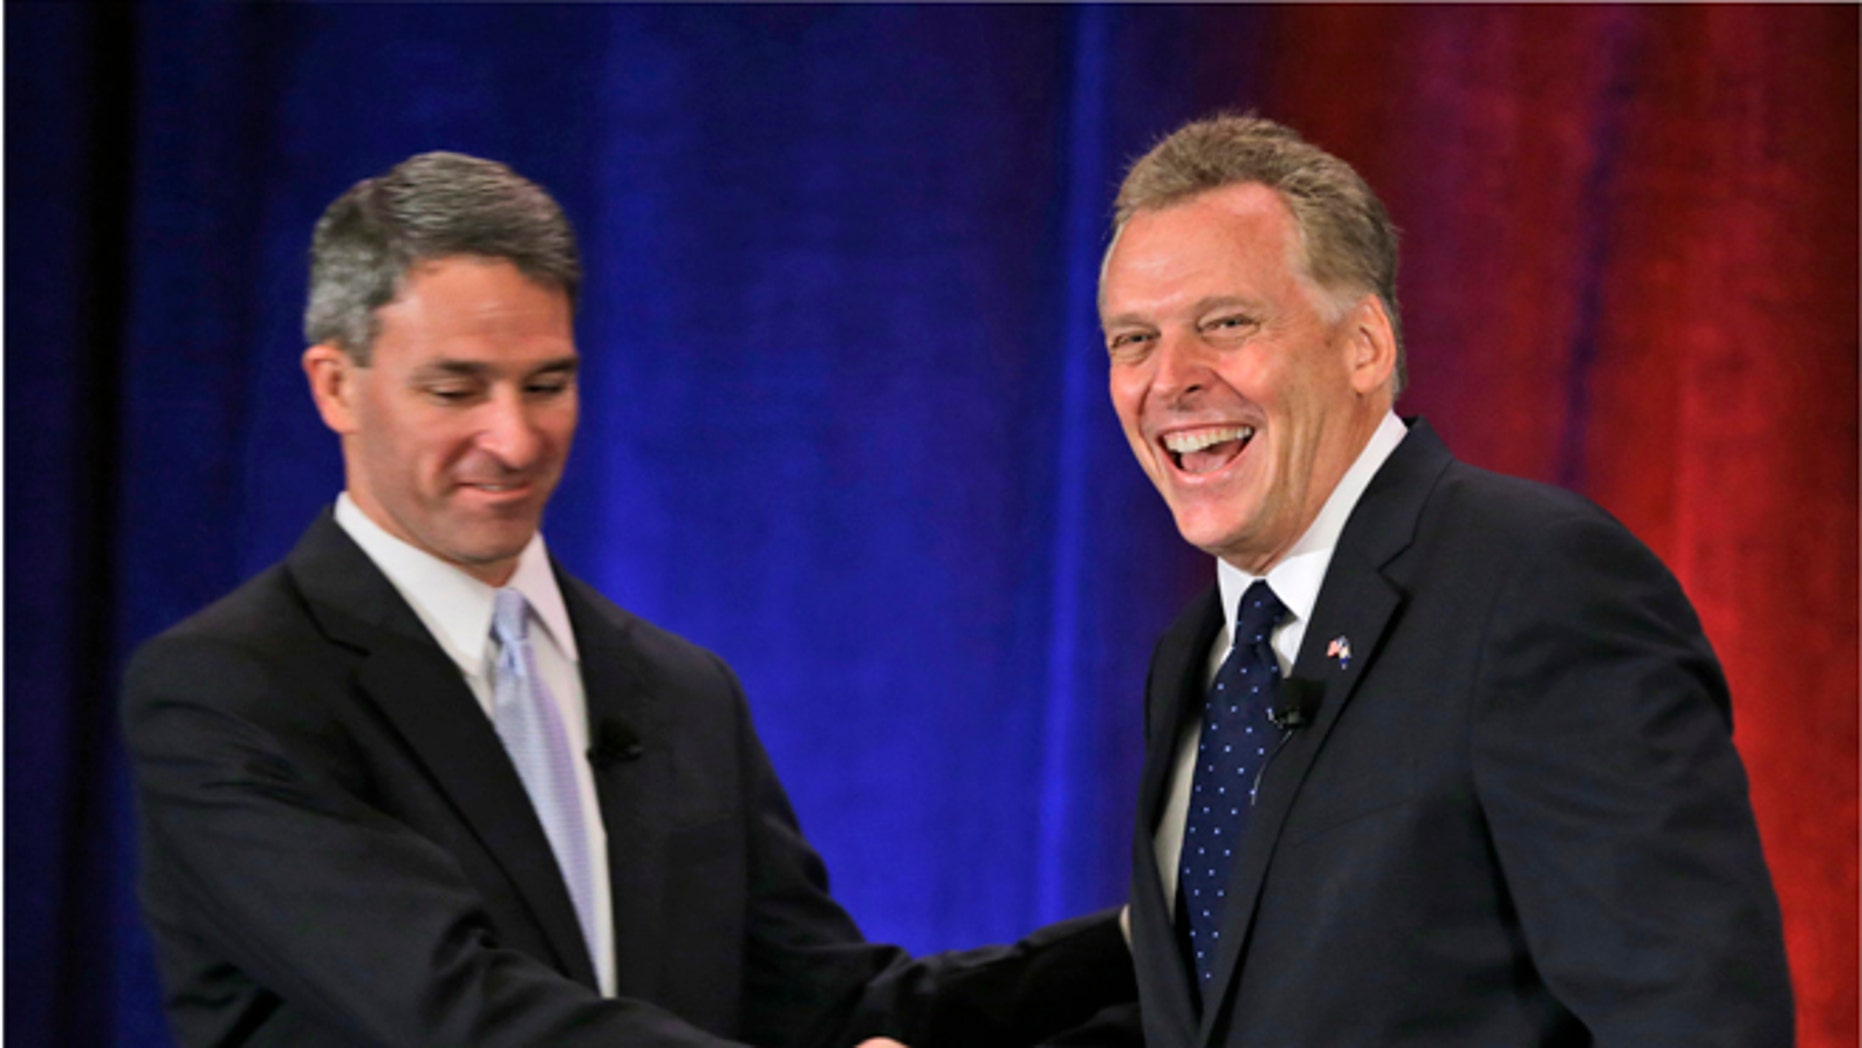 FILE: July 20, 2013: Republican gubernatorial candidate Ken Cuccinelli, left, and Democratic challenger Terry McCauliffe at the Virginia Bar Association convention debate at the Homestead in Hot Springs, Va.